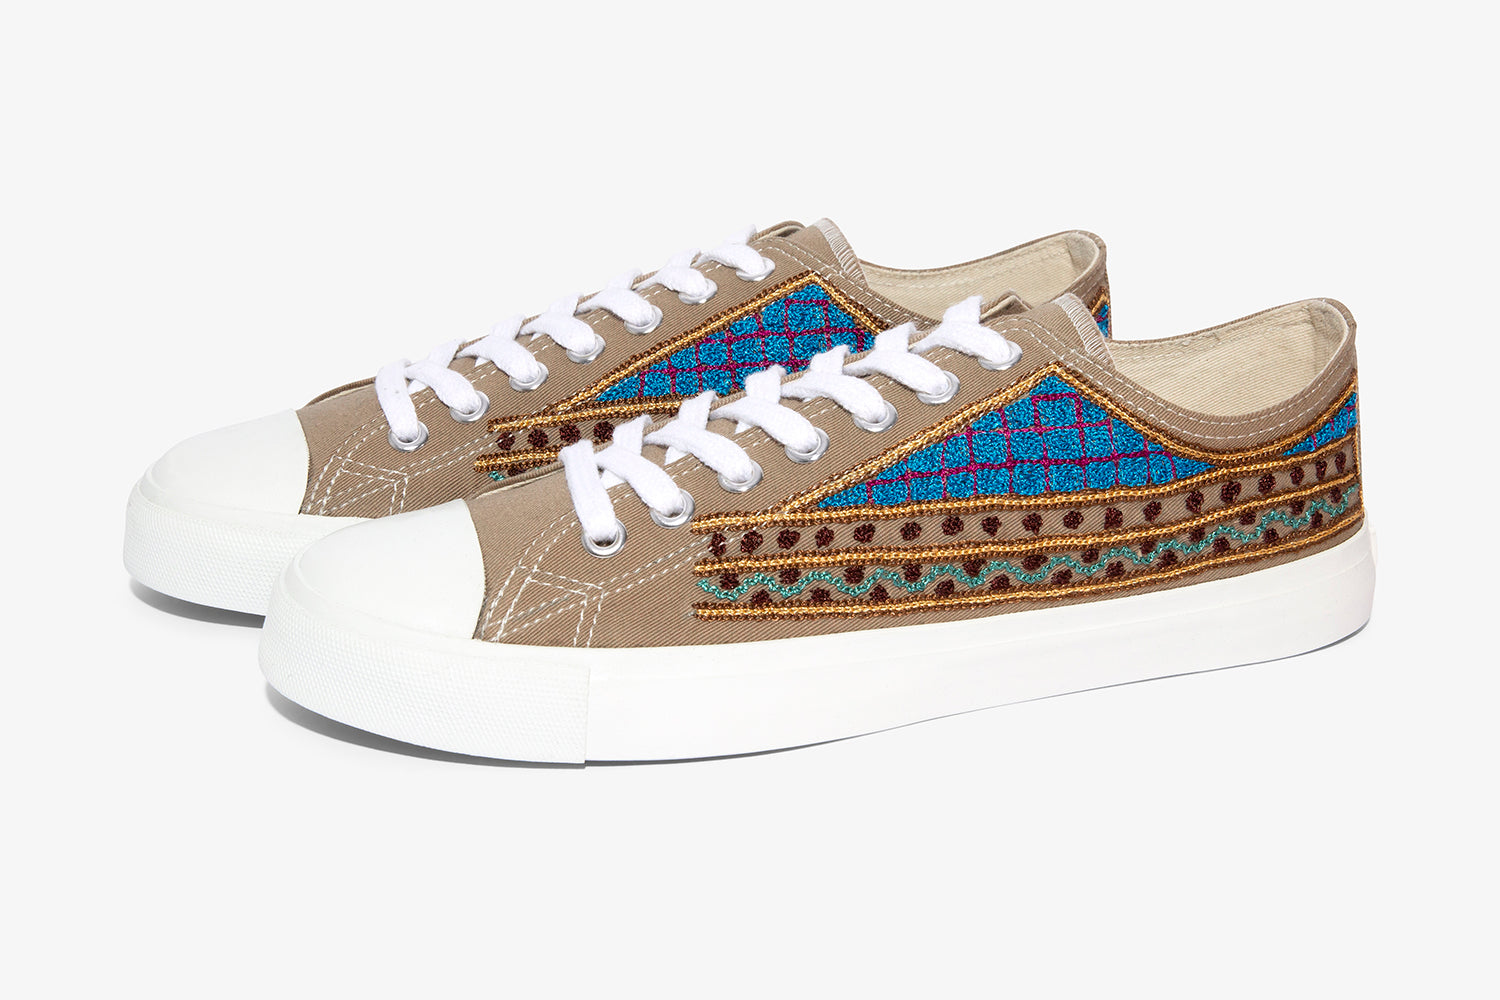 fashion sneaker with artisan hand embroidery, taupe low cut